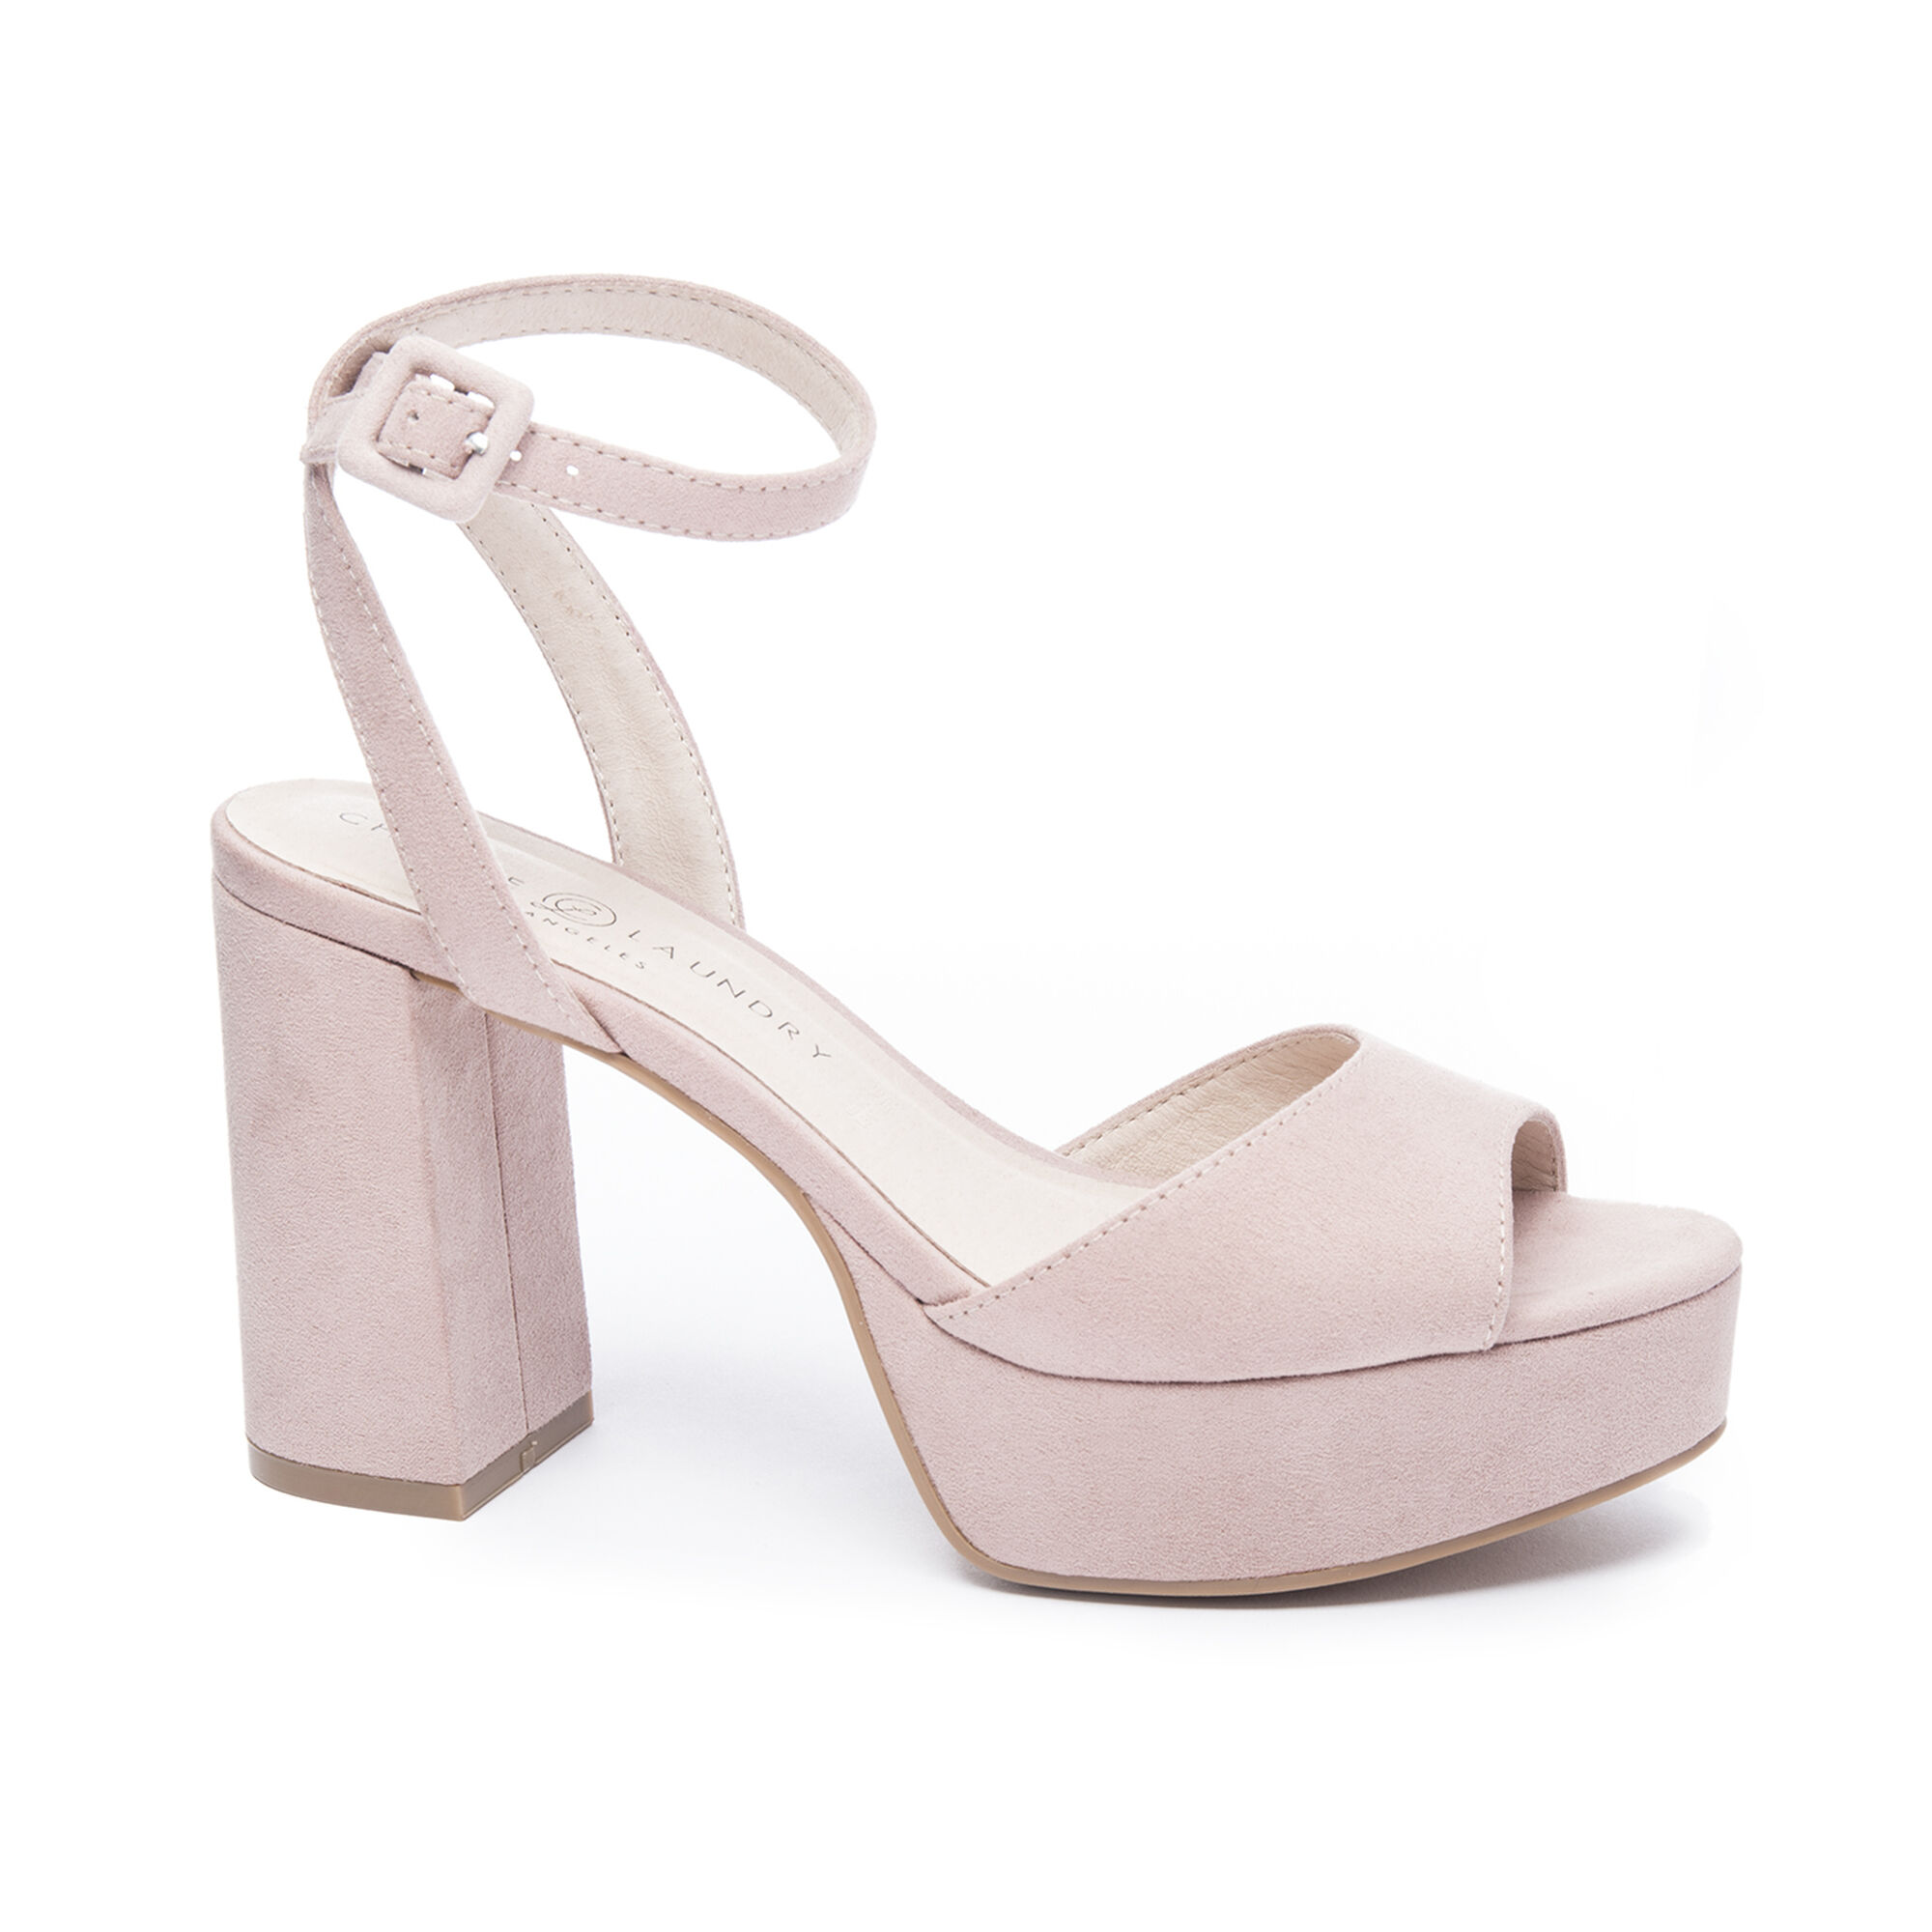 Chinese Laundry Theresa Ankle Strap Sandal (Women's) k7Dnsoef